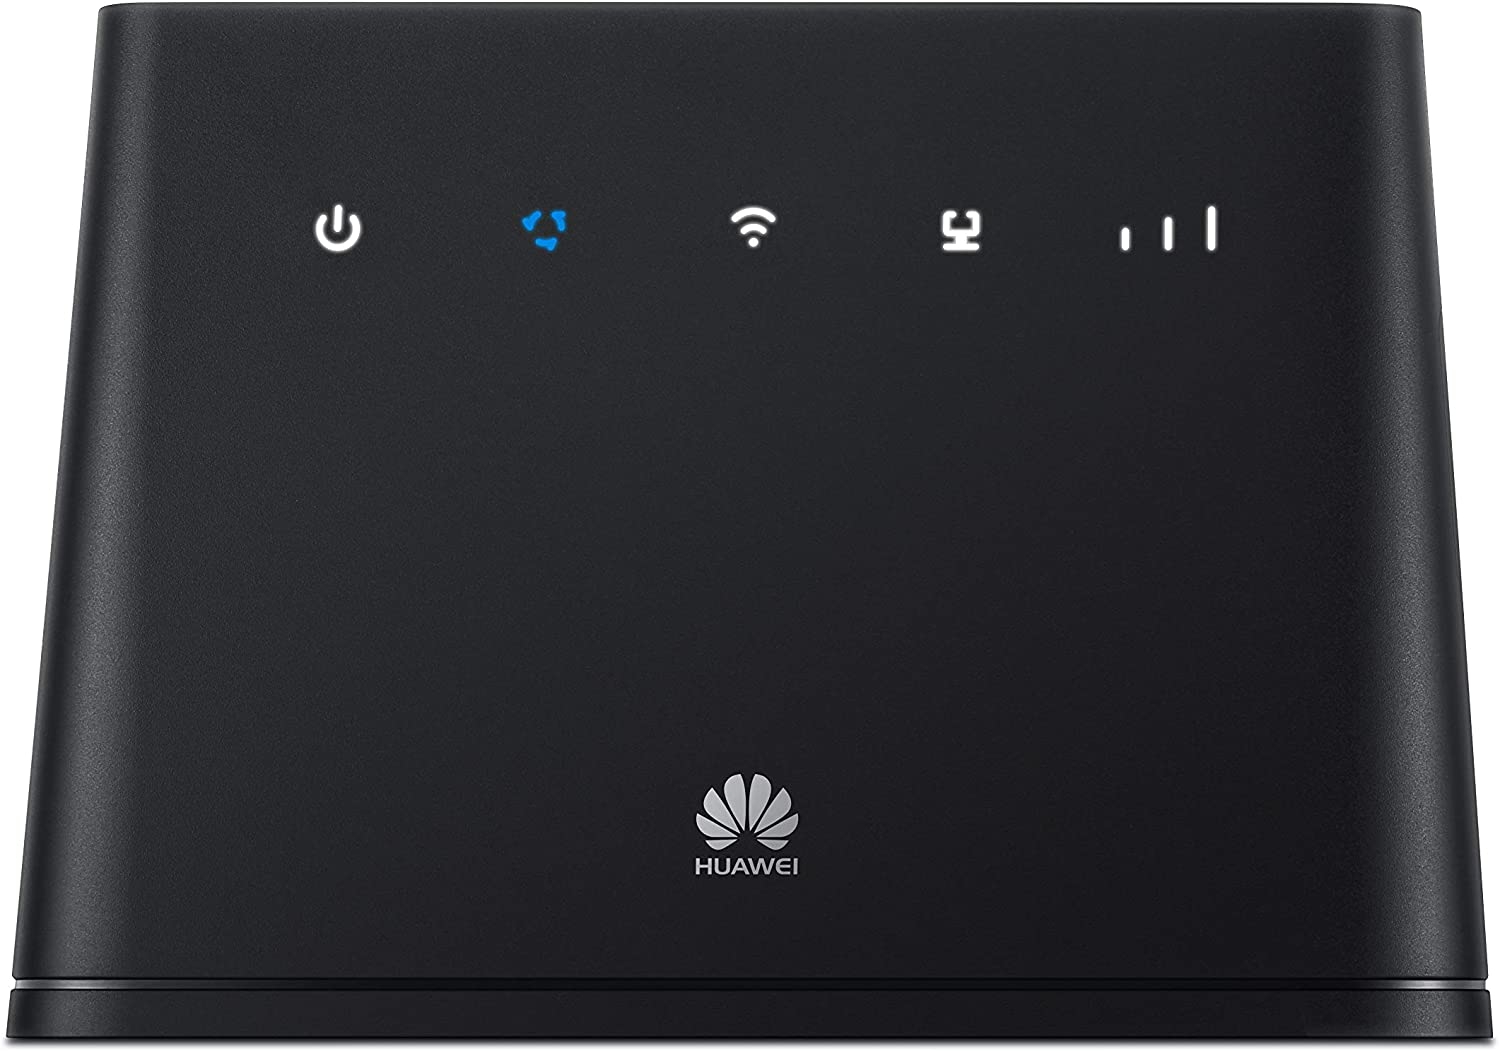 Huawei B311 2020-4G/ LTE 150 Mbps Mobile Wi-Fi Router, Unlocked to All Networks- Genuine UK Warranty STOCK (Non Network Logo)- Black,B311-221